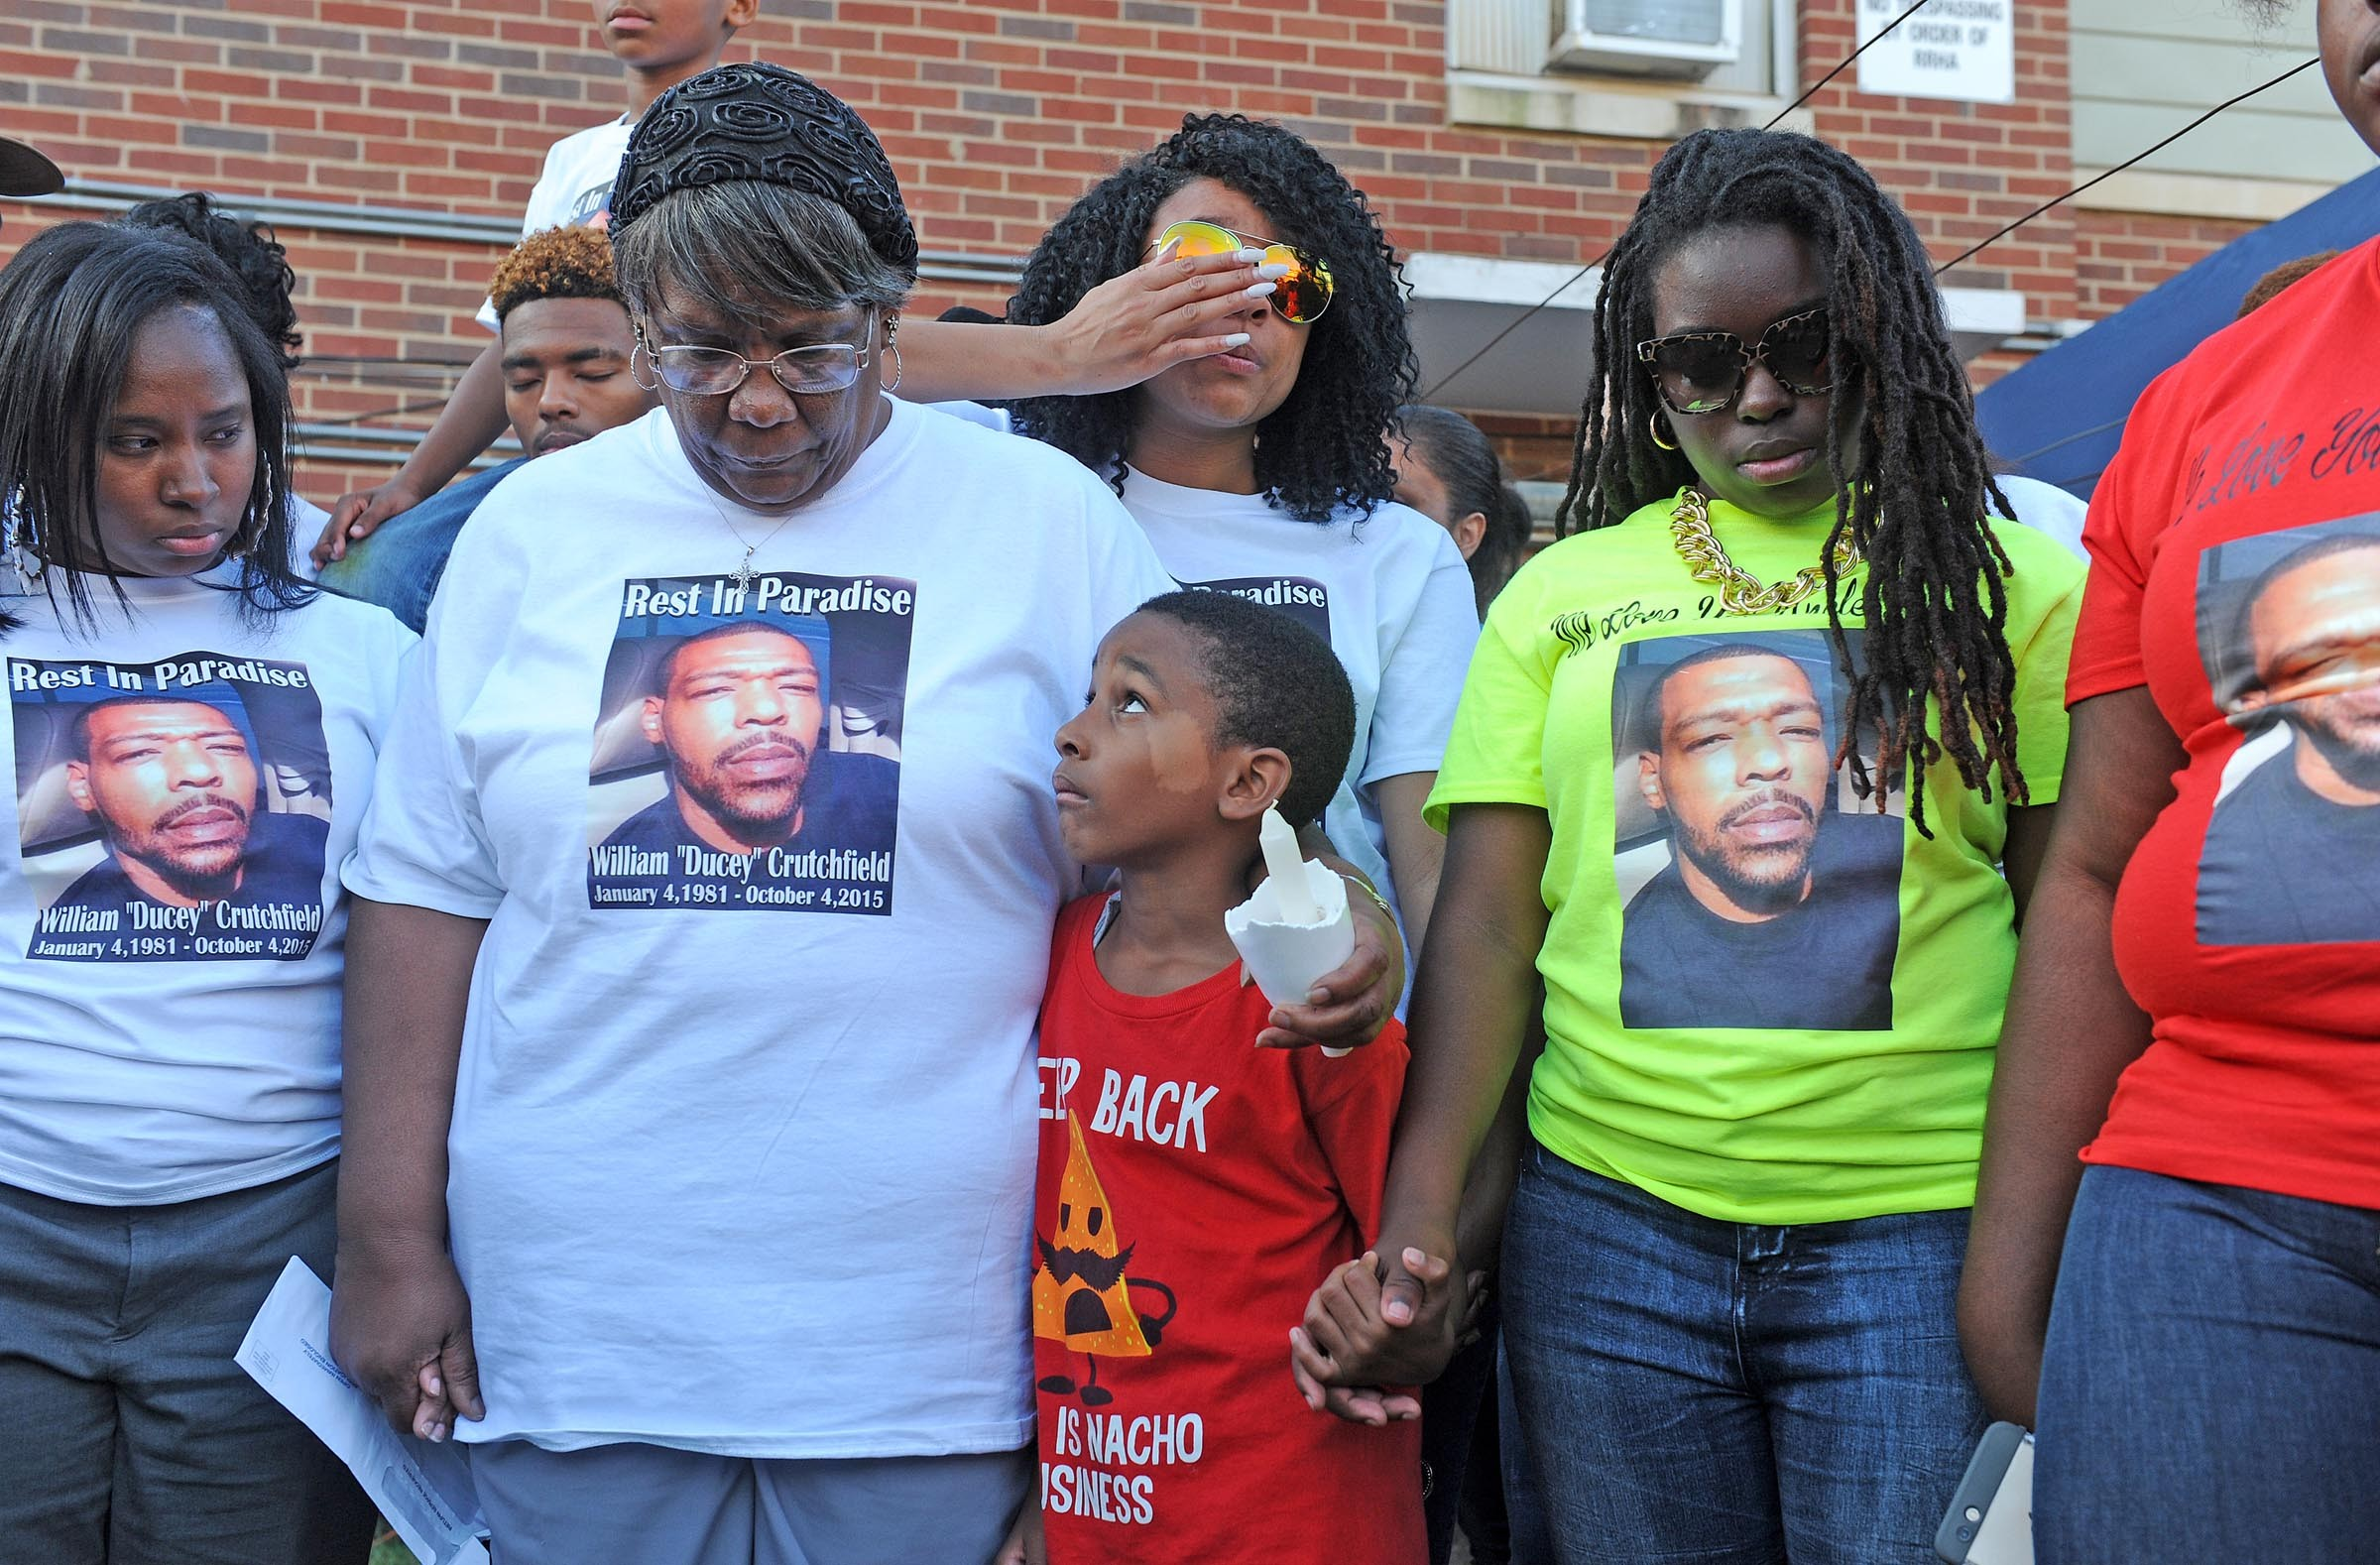 Members of William Crutchfield's family gather at his vigil in October, wearing T-shirts to honor him. - SCOTT ELMQUIST